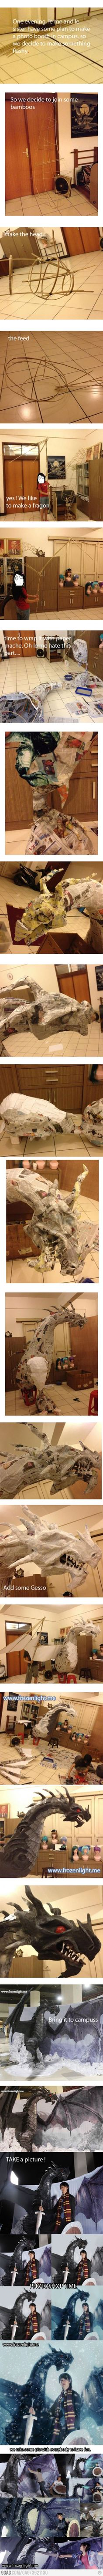 Shows that you can make amazing things with paper mache!